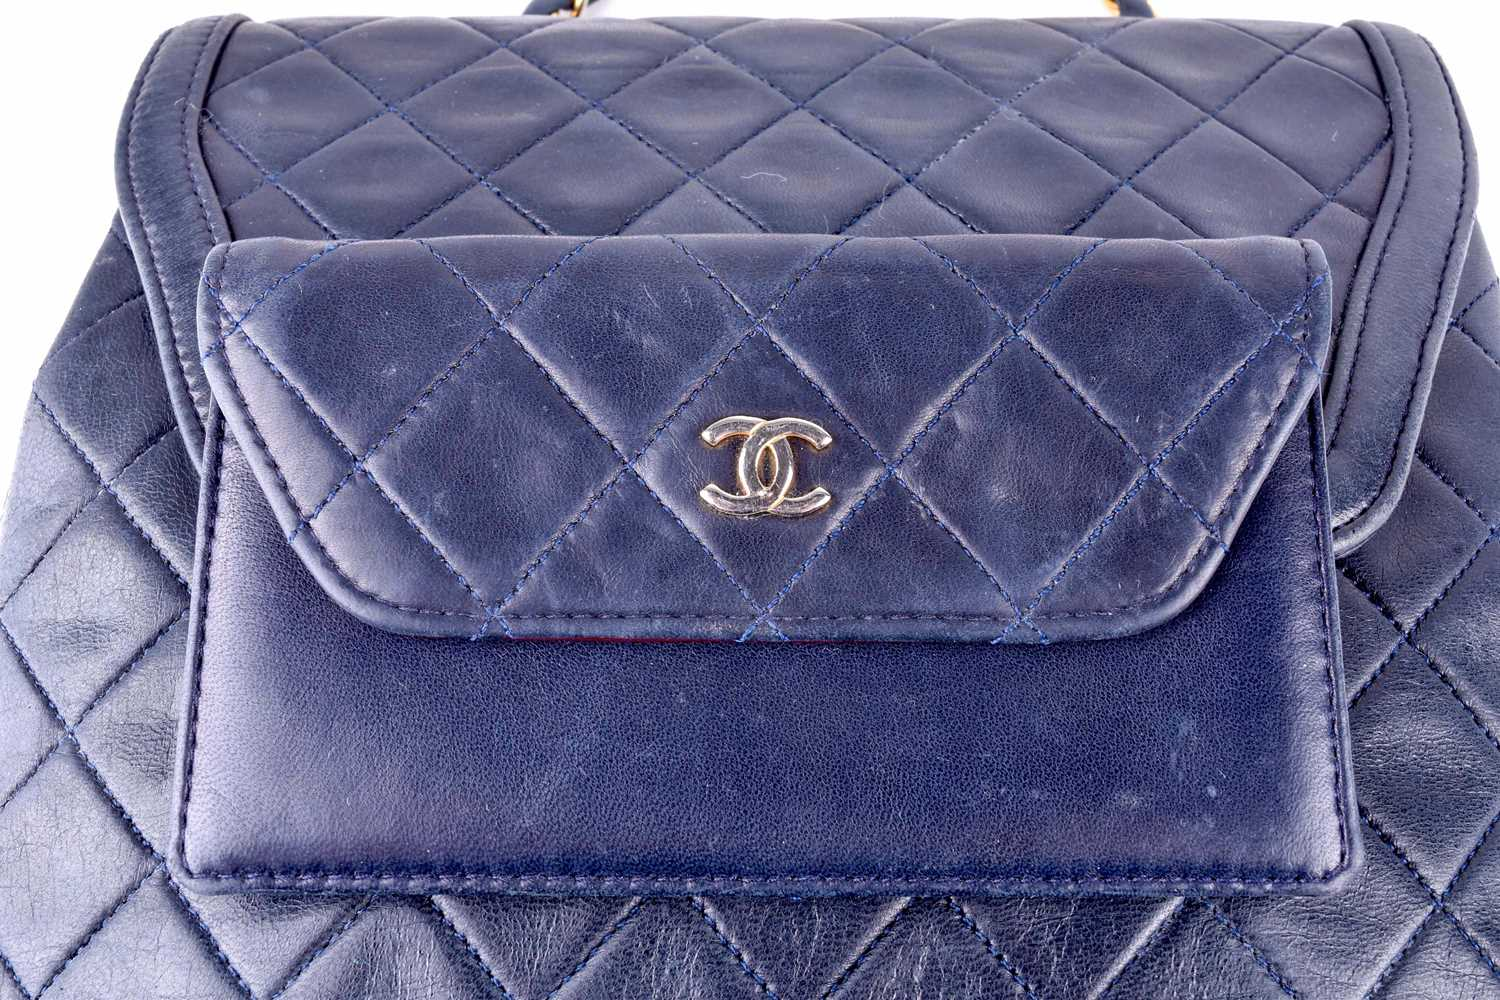 Chanel. A classic quilted leather handbag, of tapered square design, with gold tone CC logo clasp, - Image 11 of 26